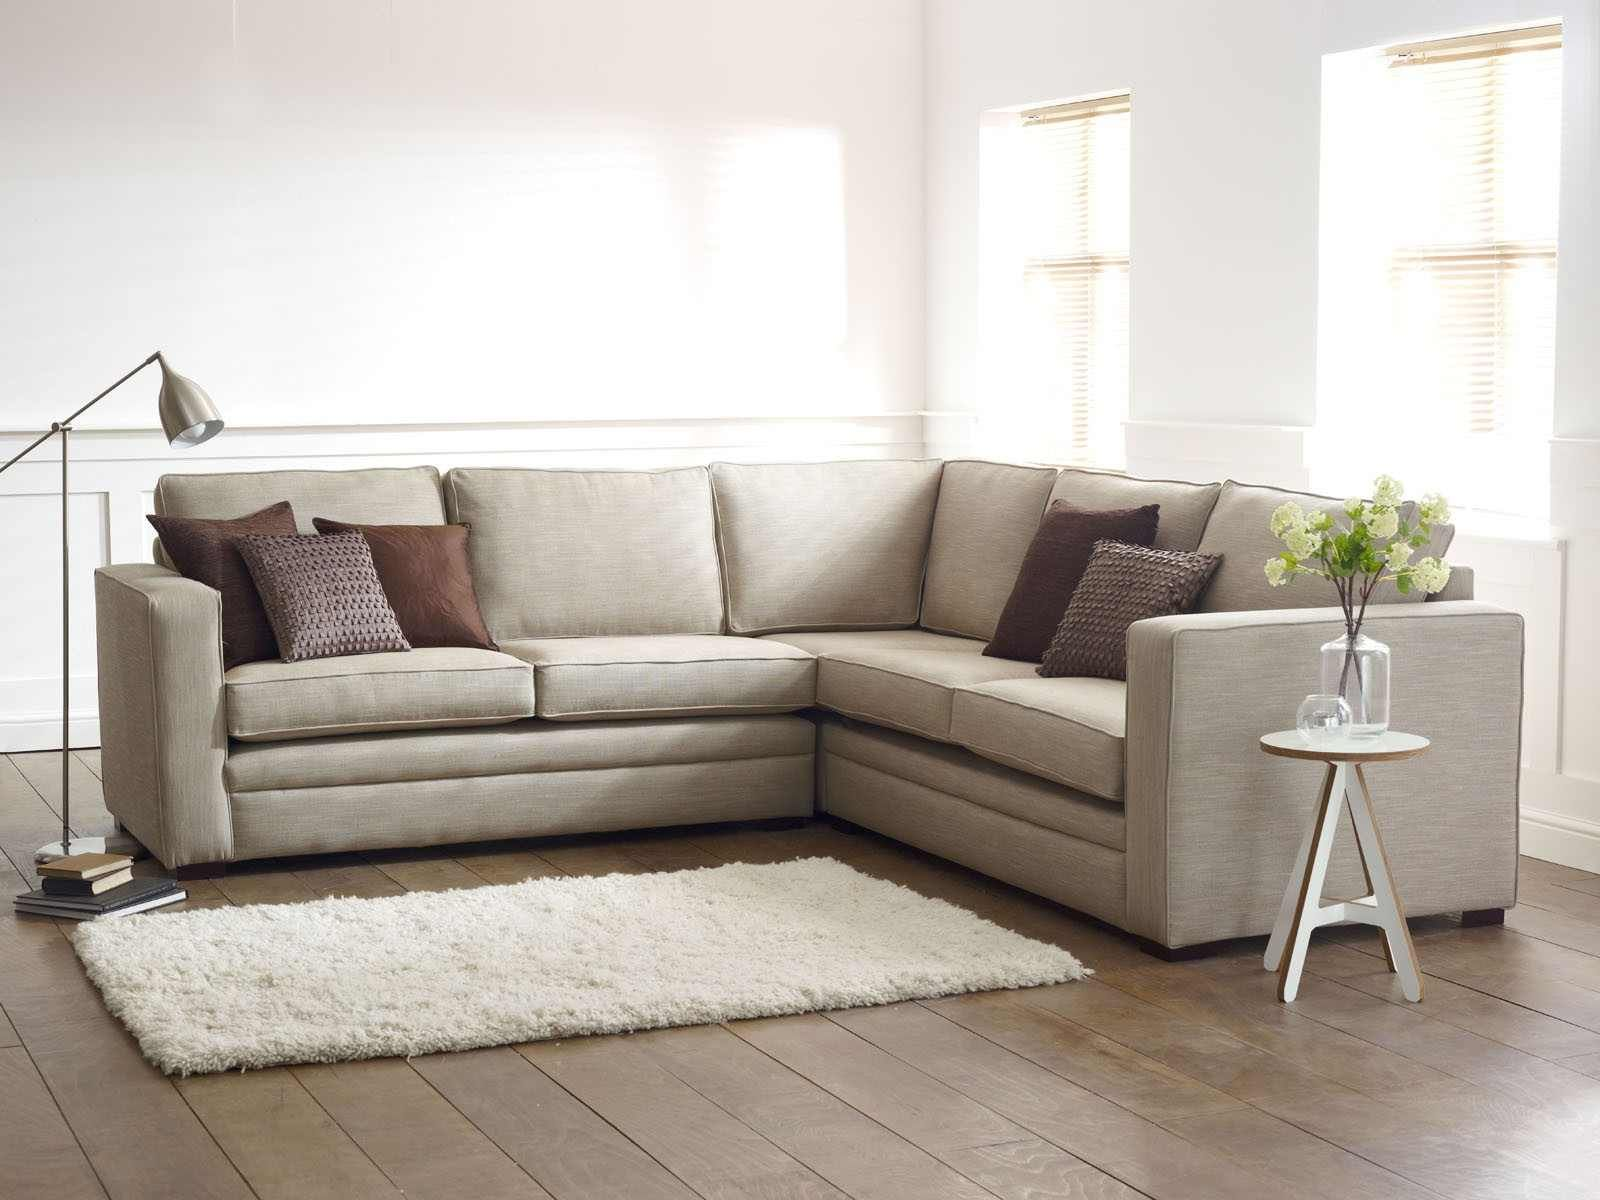 sofa design ideas 3 seater recliner india pin by selbicconsult on living room pinterest nice lshaped couch great 59 with additional table